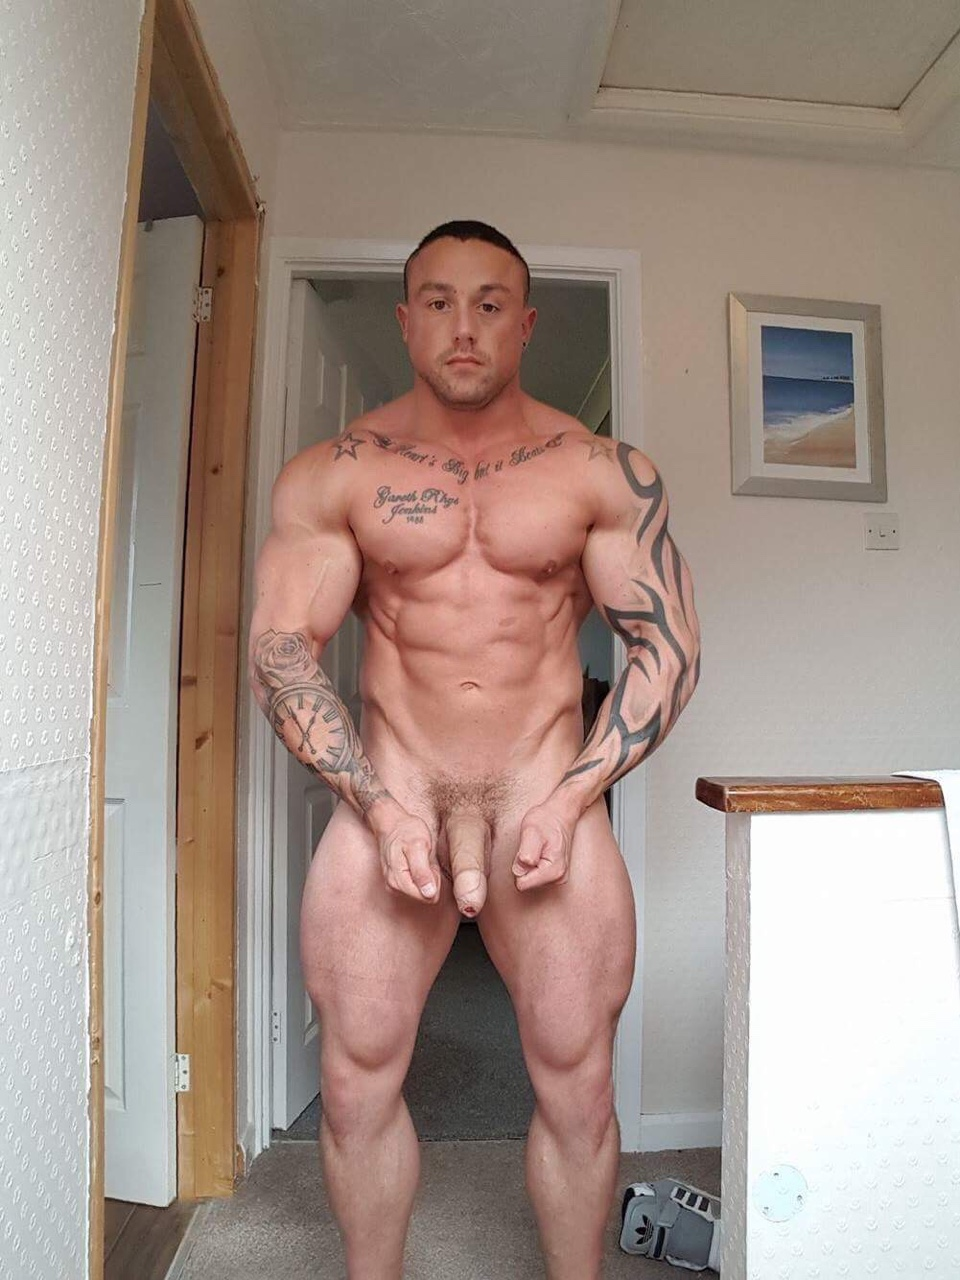 Naked Amateur Guys Hung Uncut Bodybuilder Shows Off Naked-4140